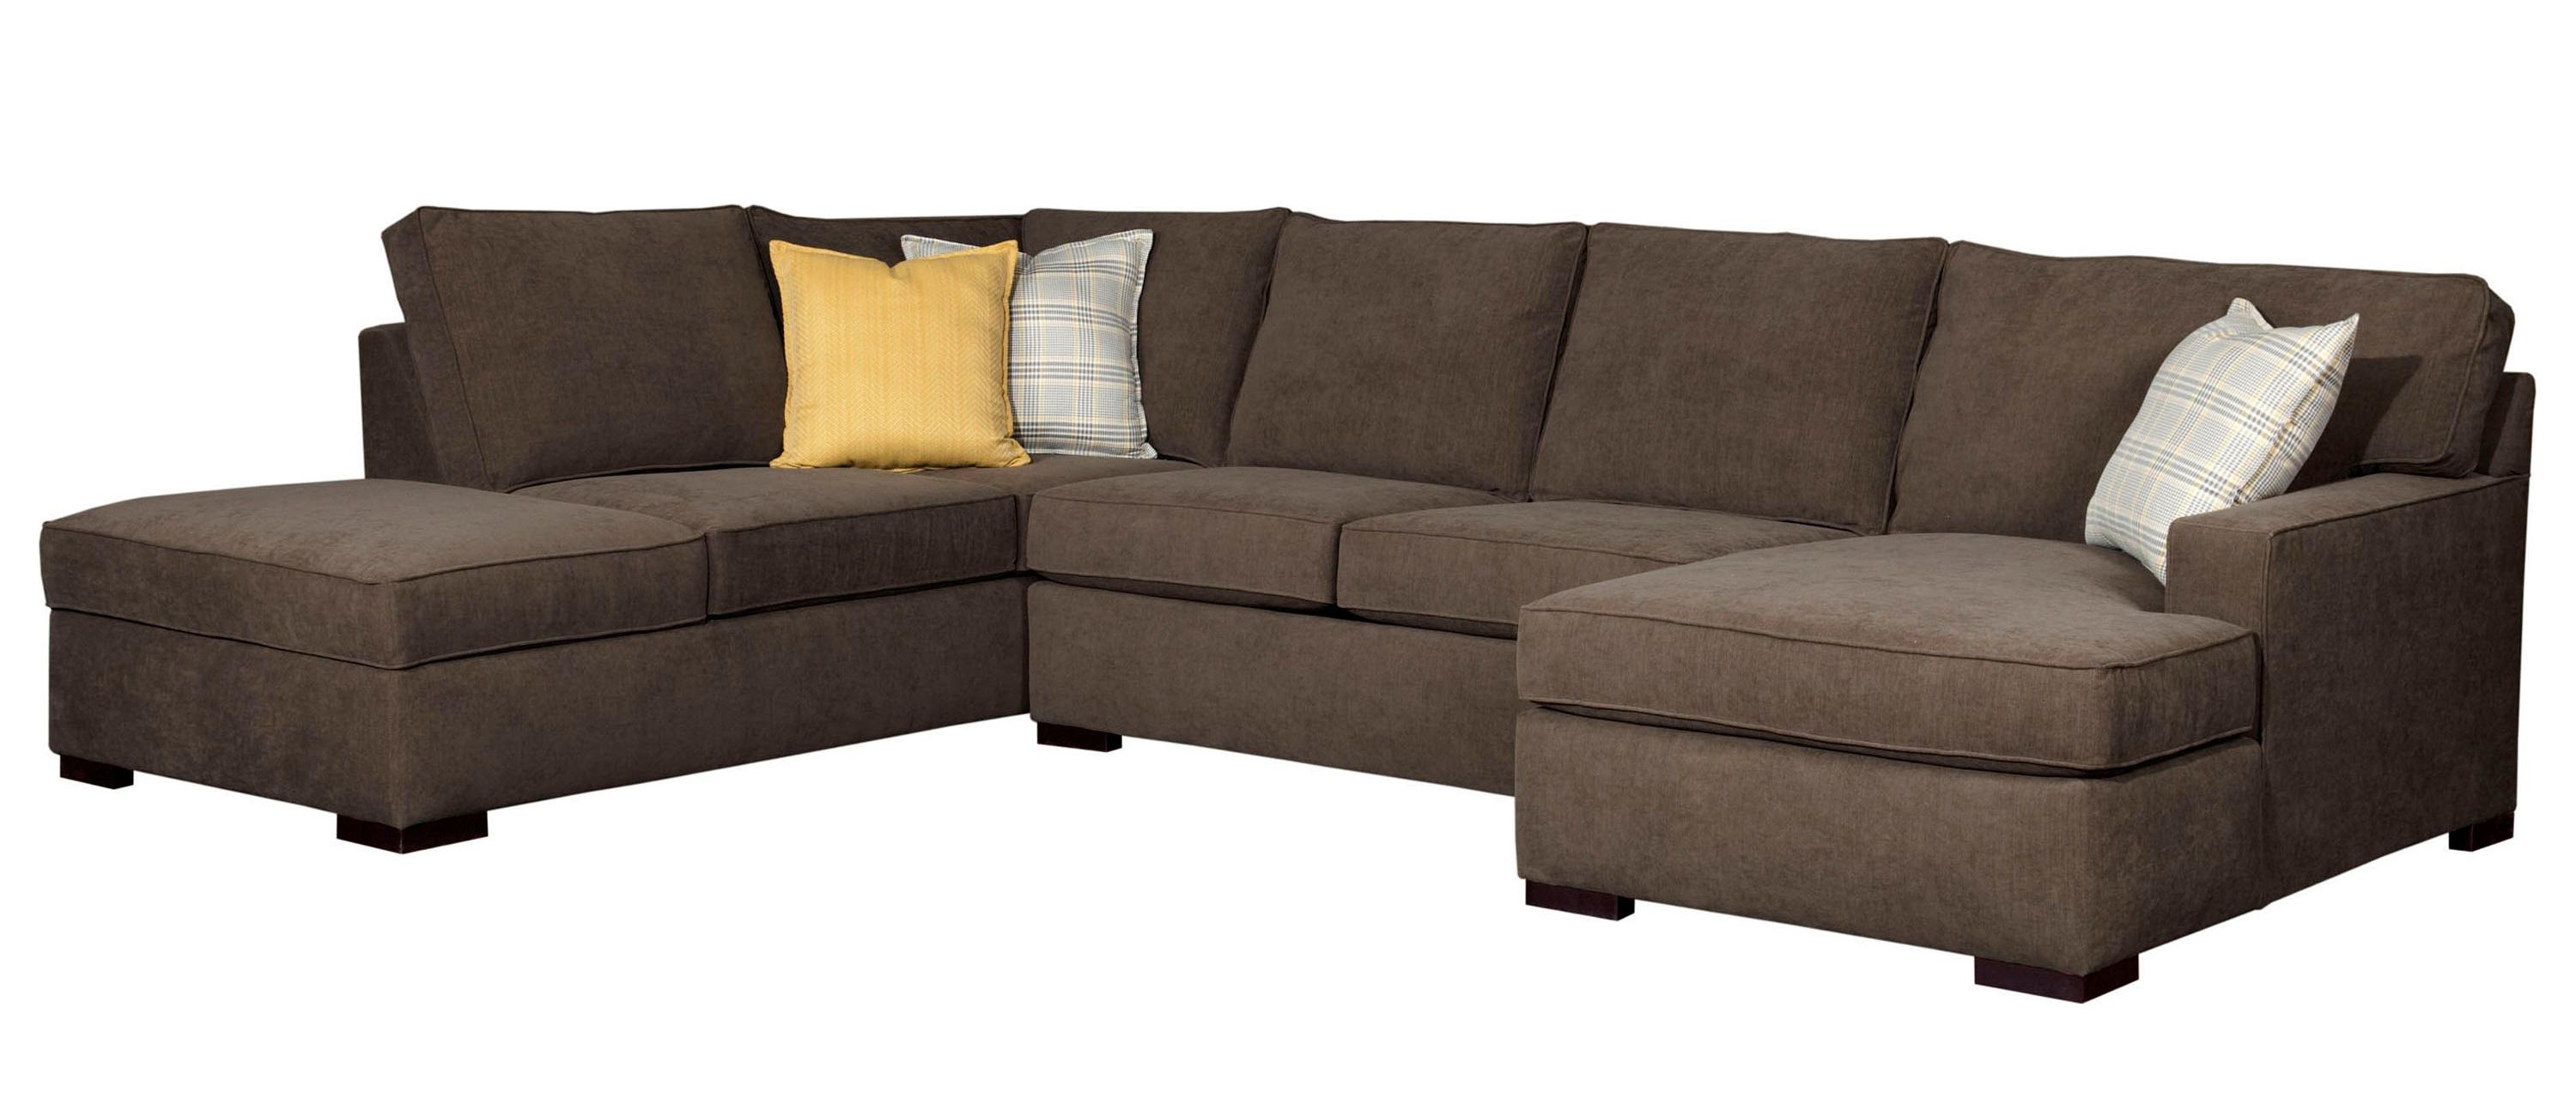 contemporary sectional sofas with chaise photo - 4